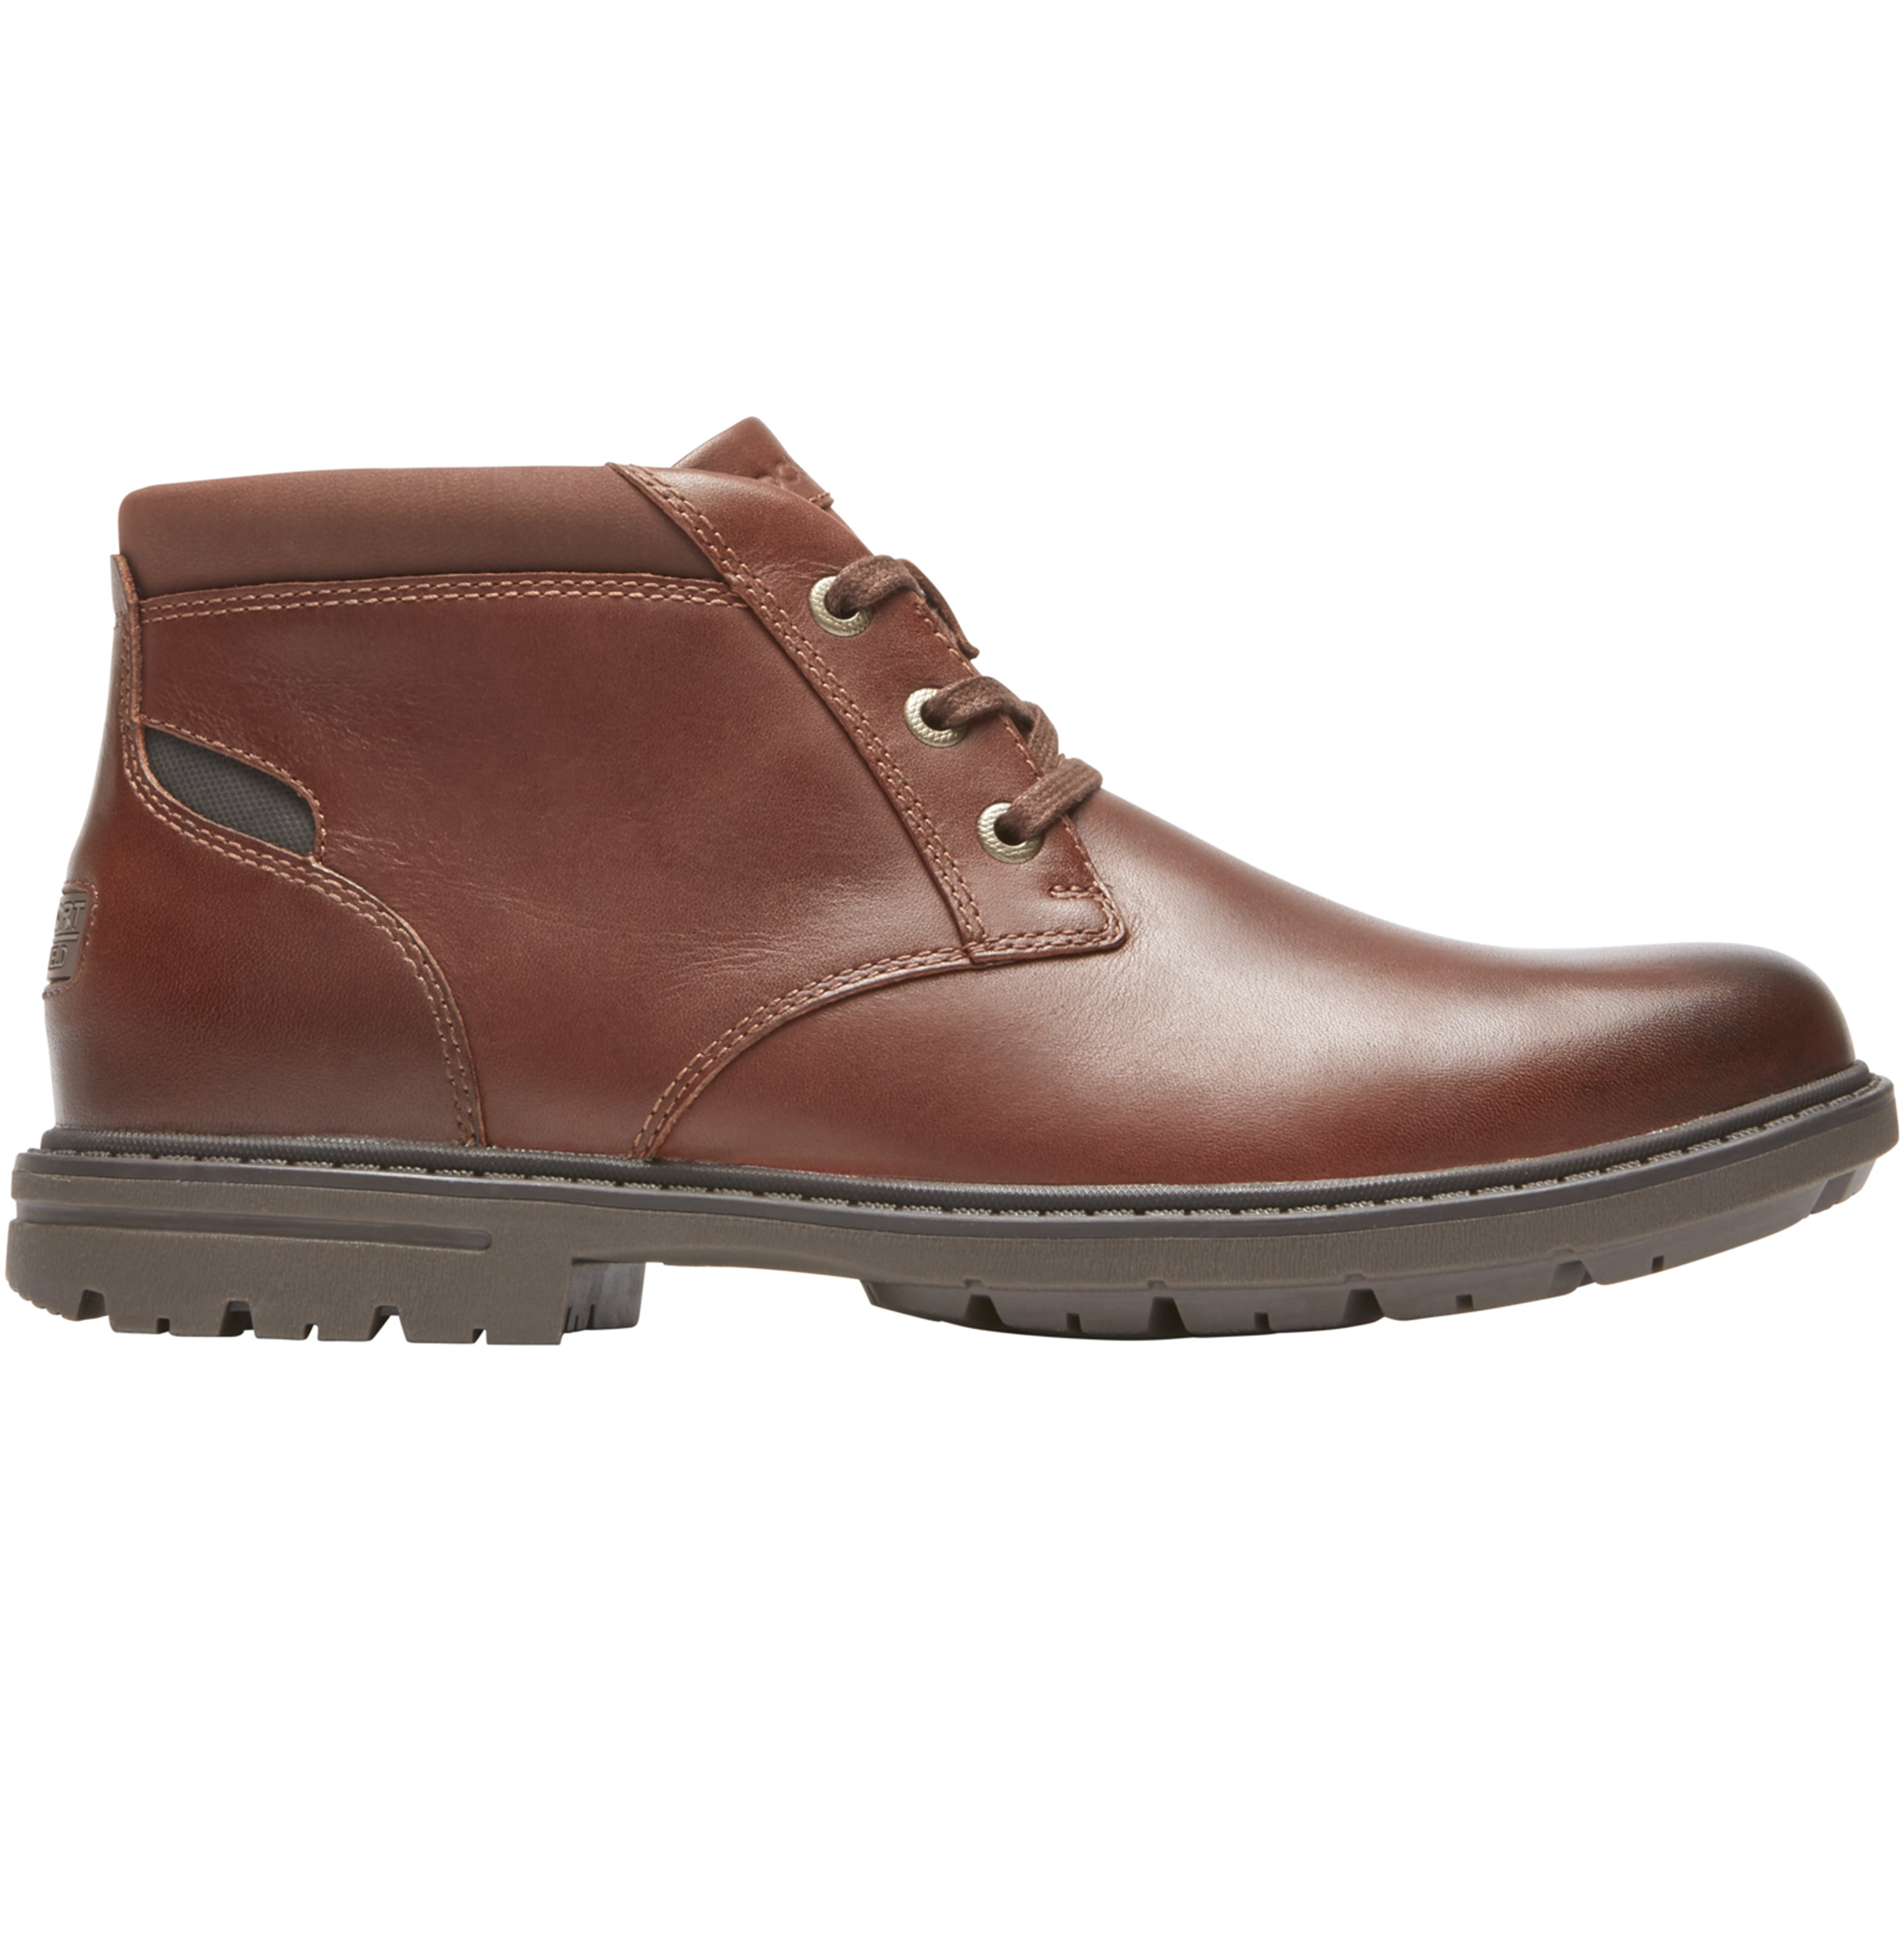 From Available Botas De Hombre Blackleaf qtwWPg1